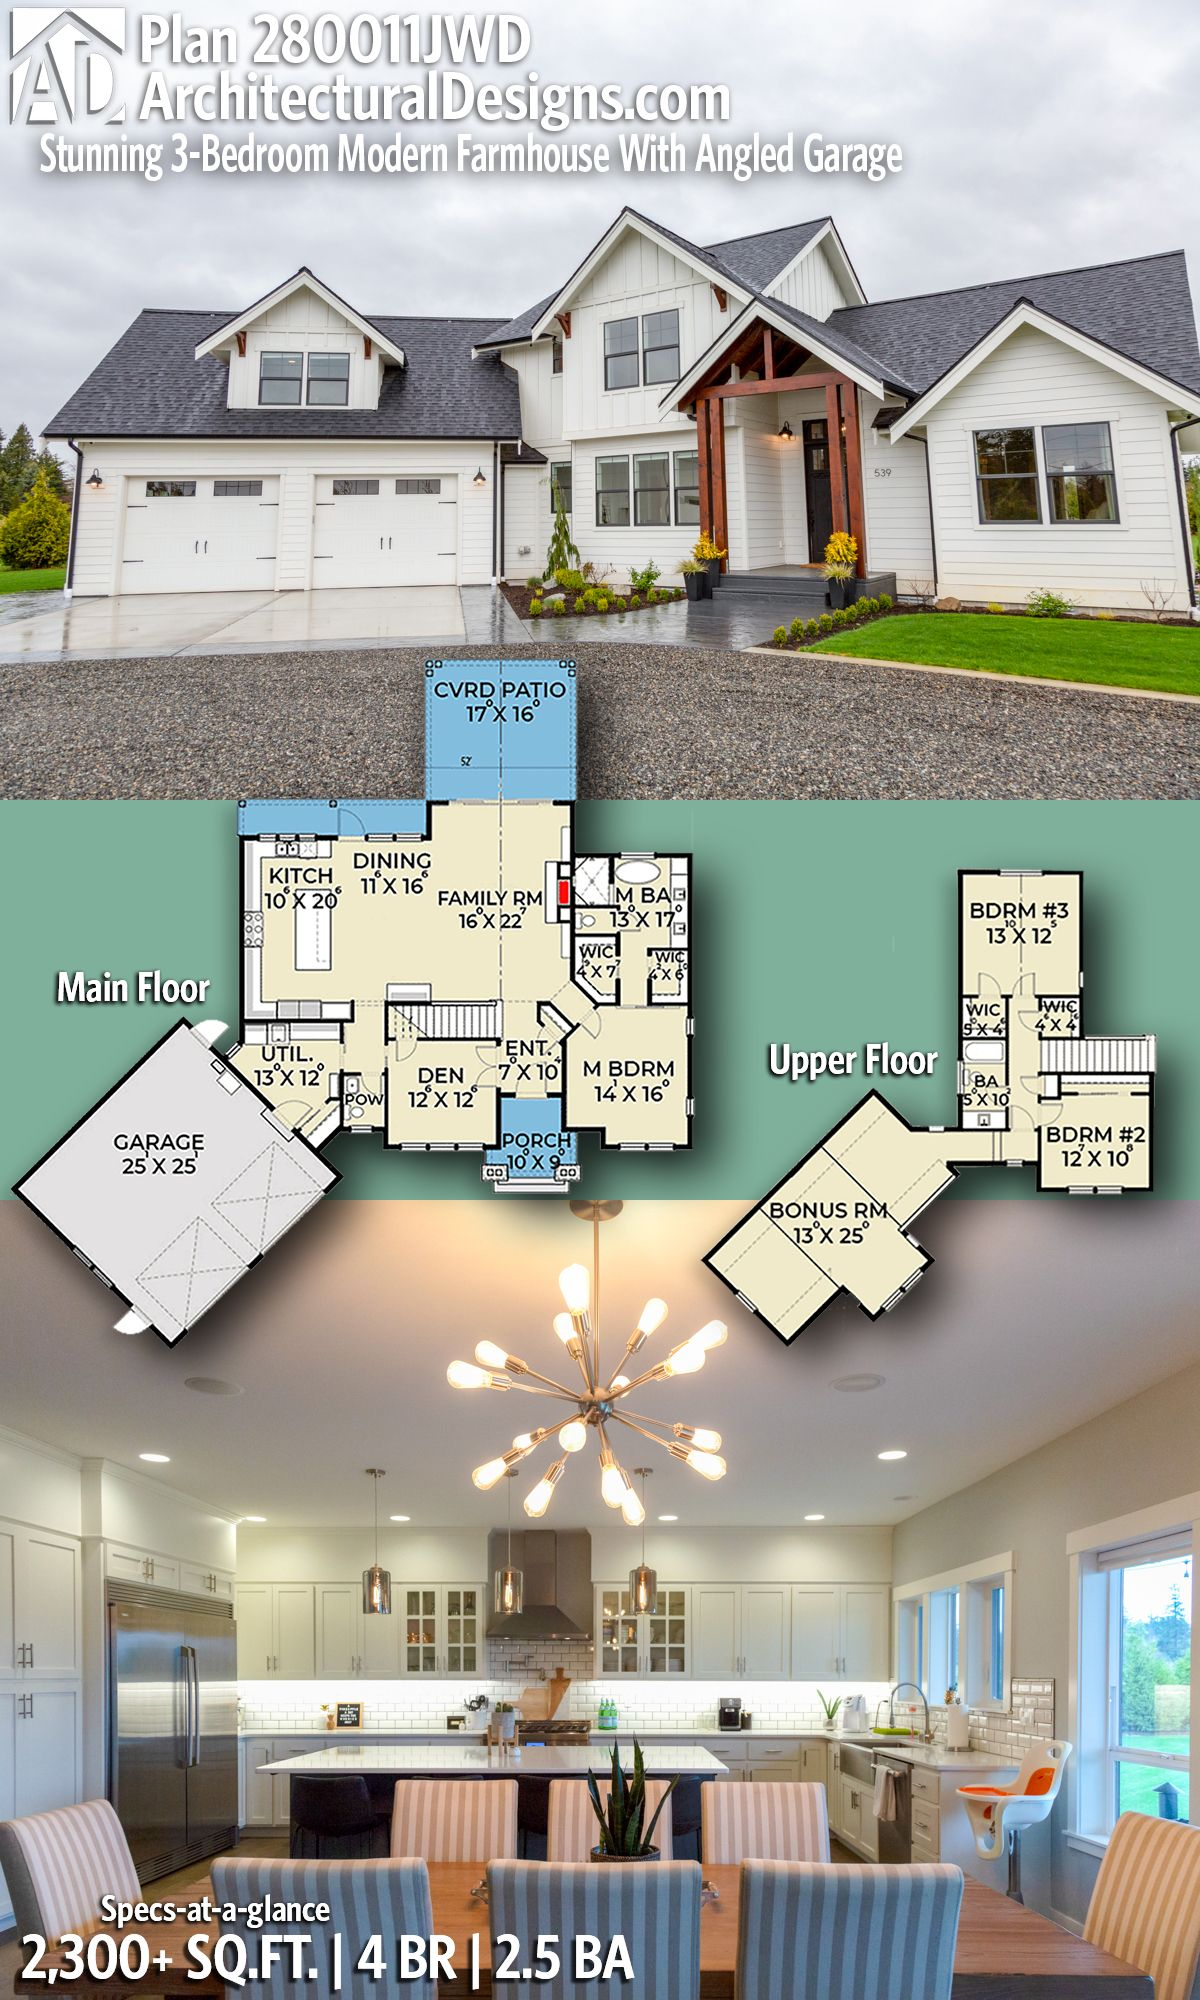 Introducing Architectural Designs Modern Farmhouse House Plan 280011Jwd With 3